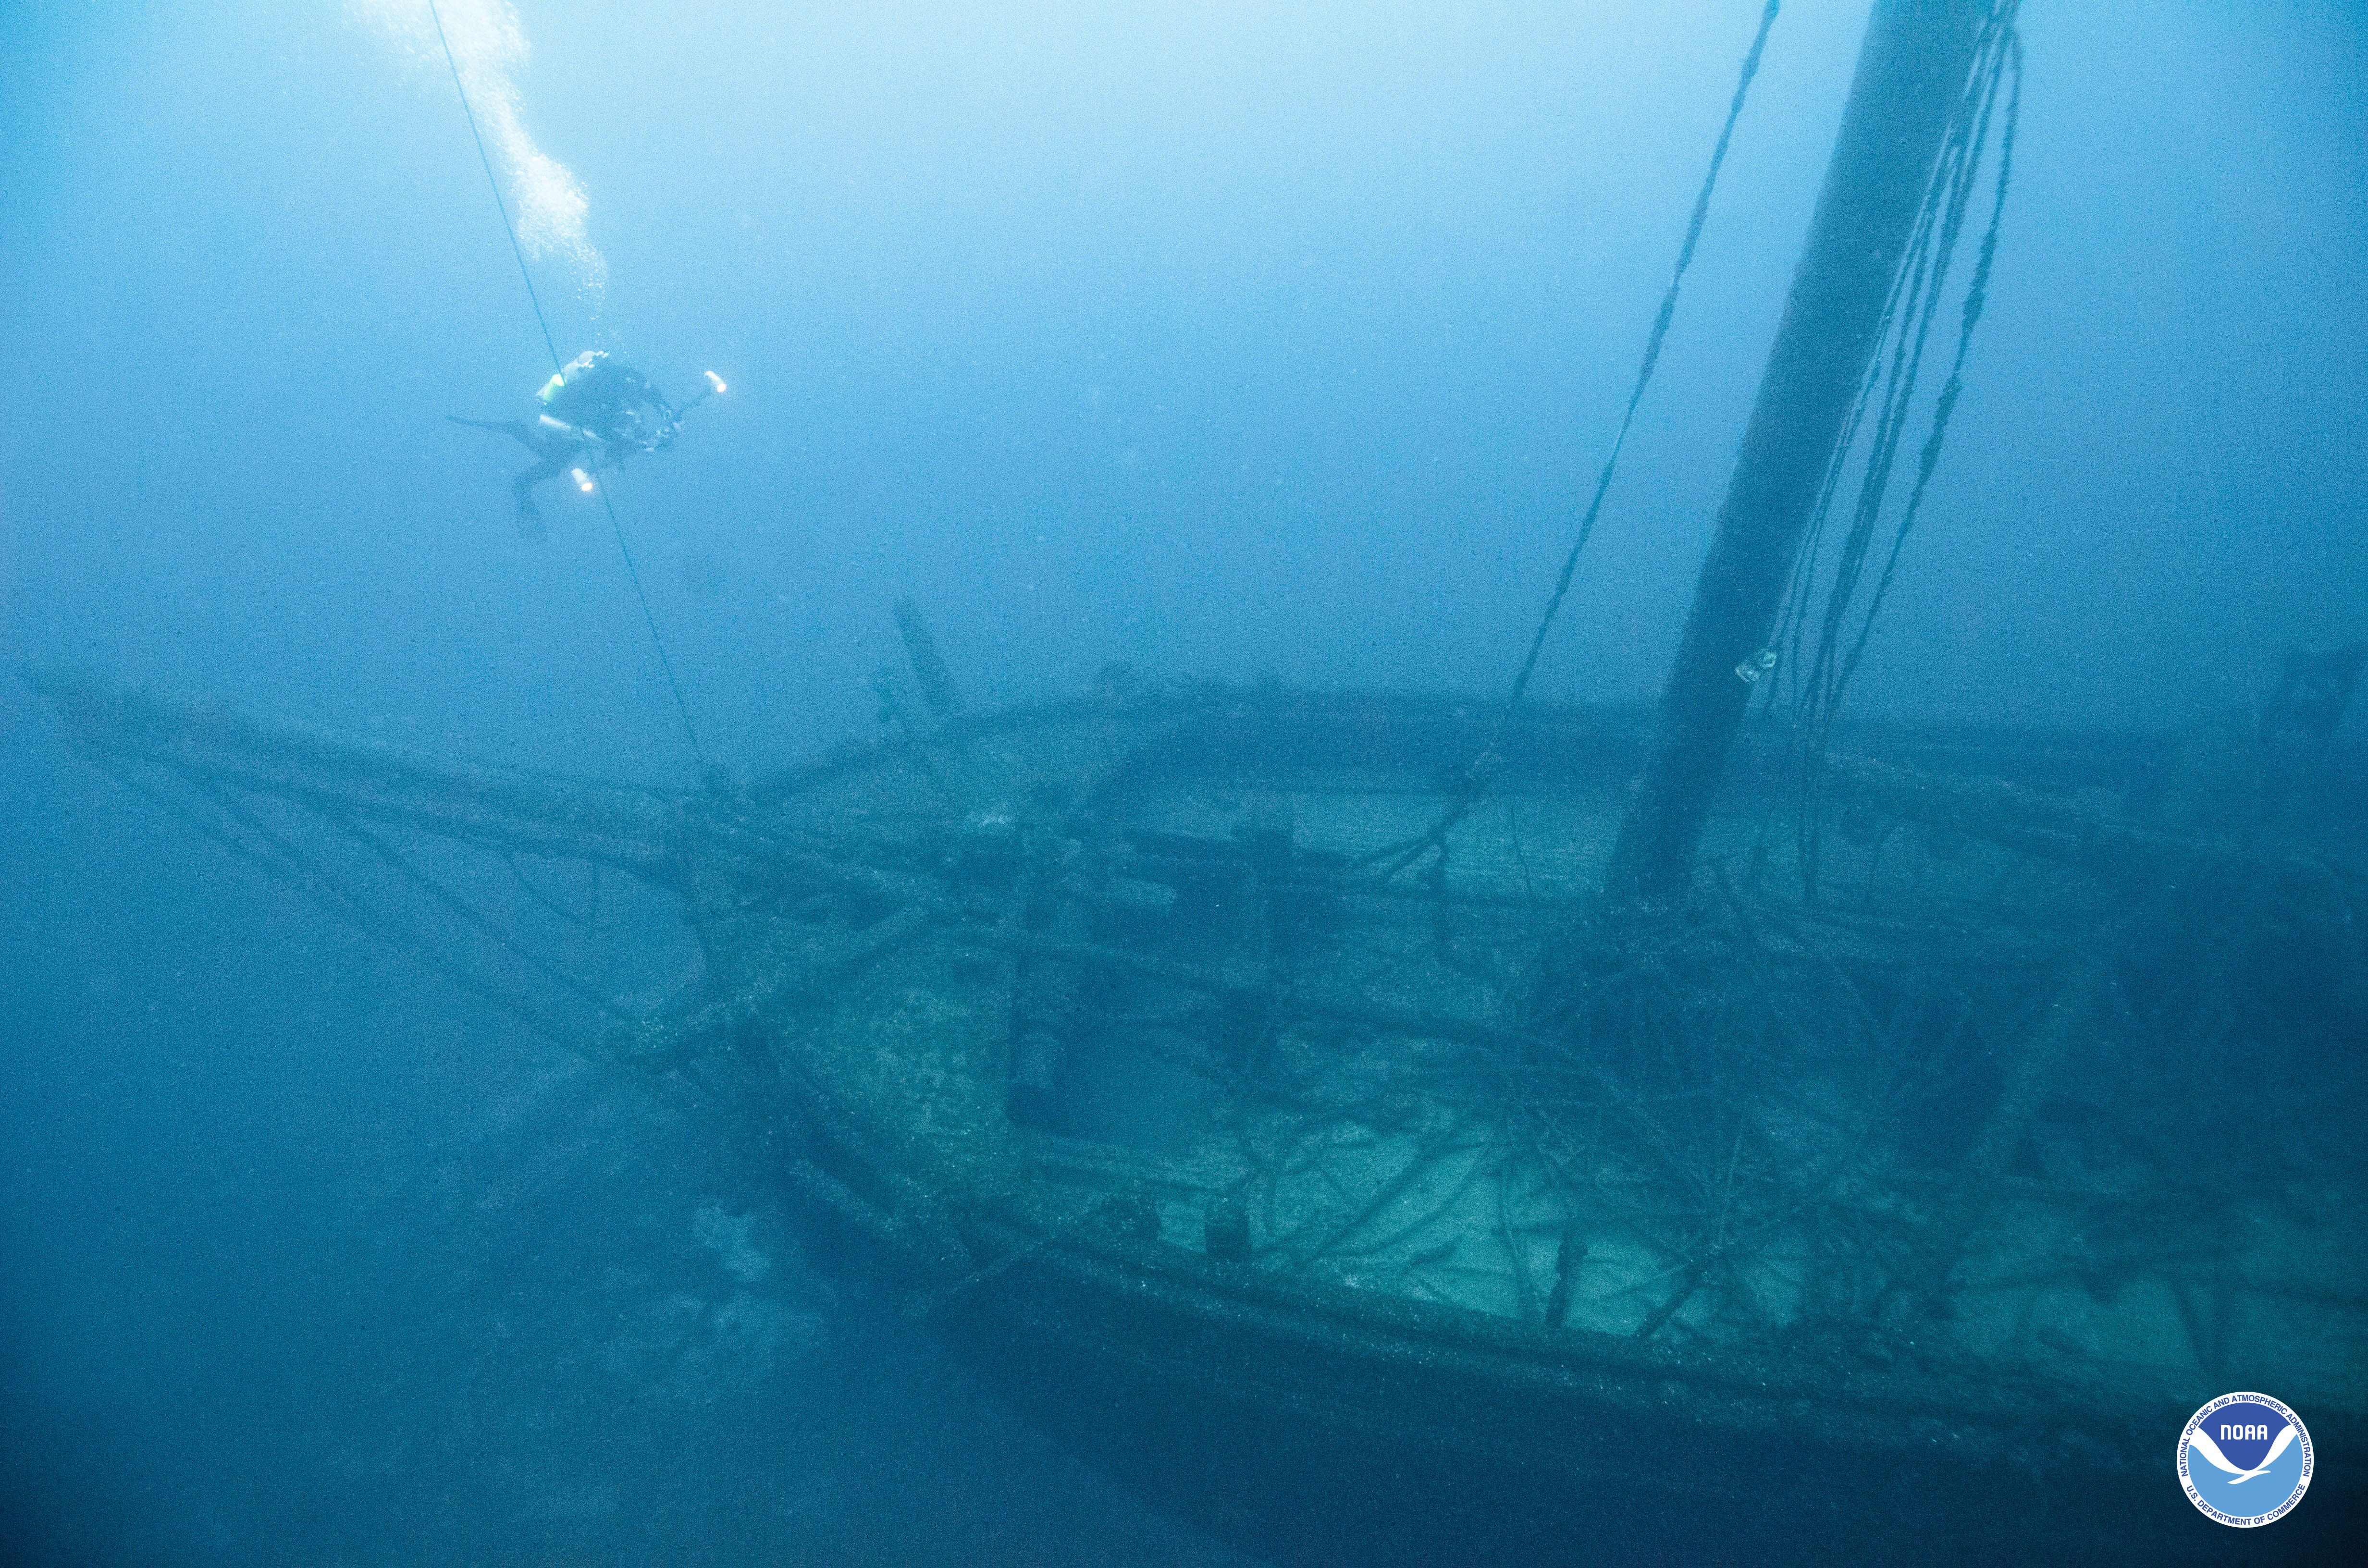 The TYPO sank in October of 1899 after being run down by another schooner. Today, the TYPO sits upright in the water with evidence of its quick sinking still present. The cargo is still on board and the ship's bell can still be seen in the belfry. Learn more about this shipwreck from Thunder Bay National Marine Sanctuary.